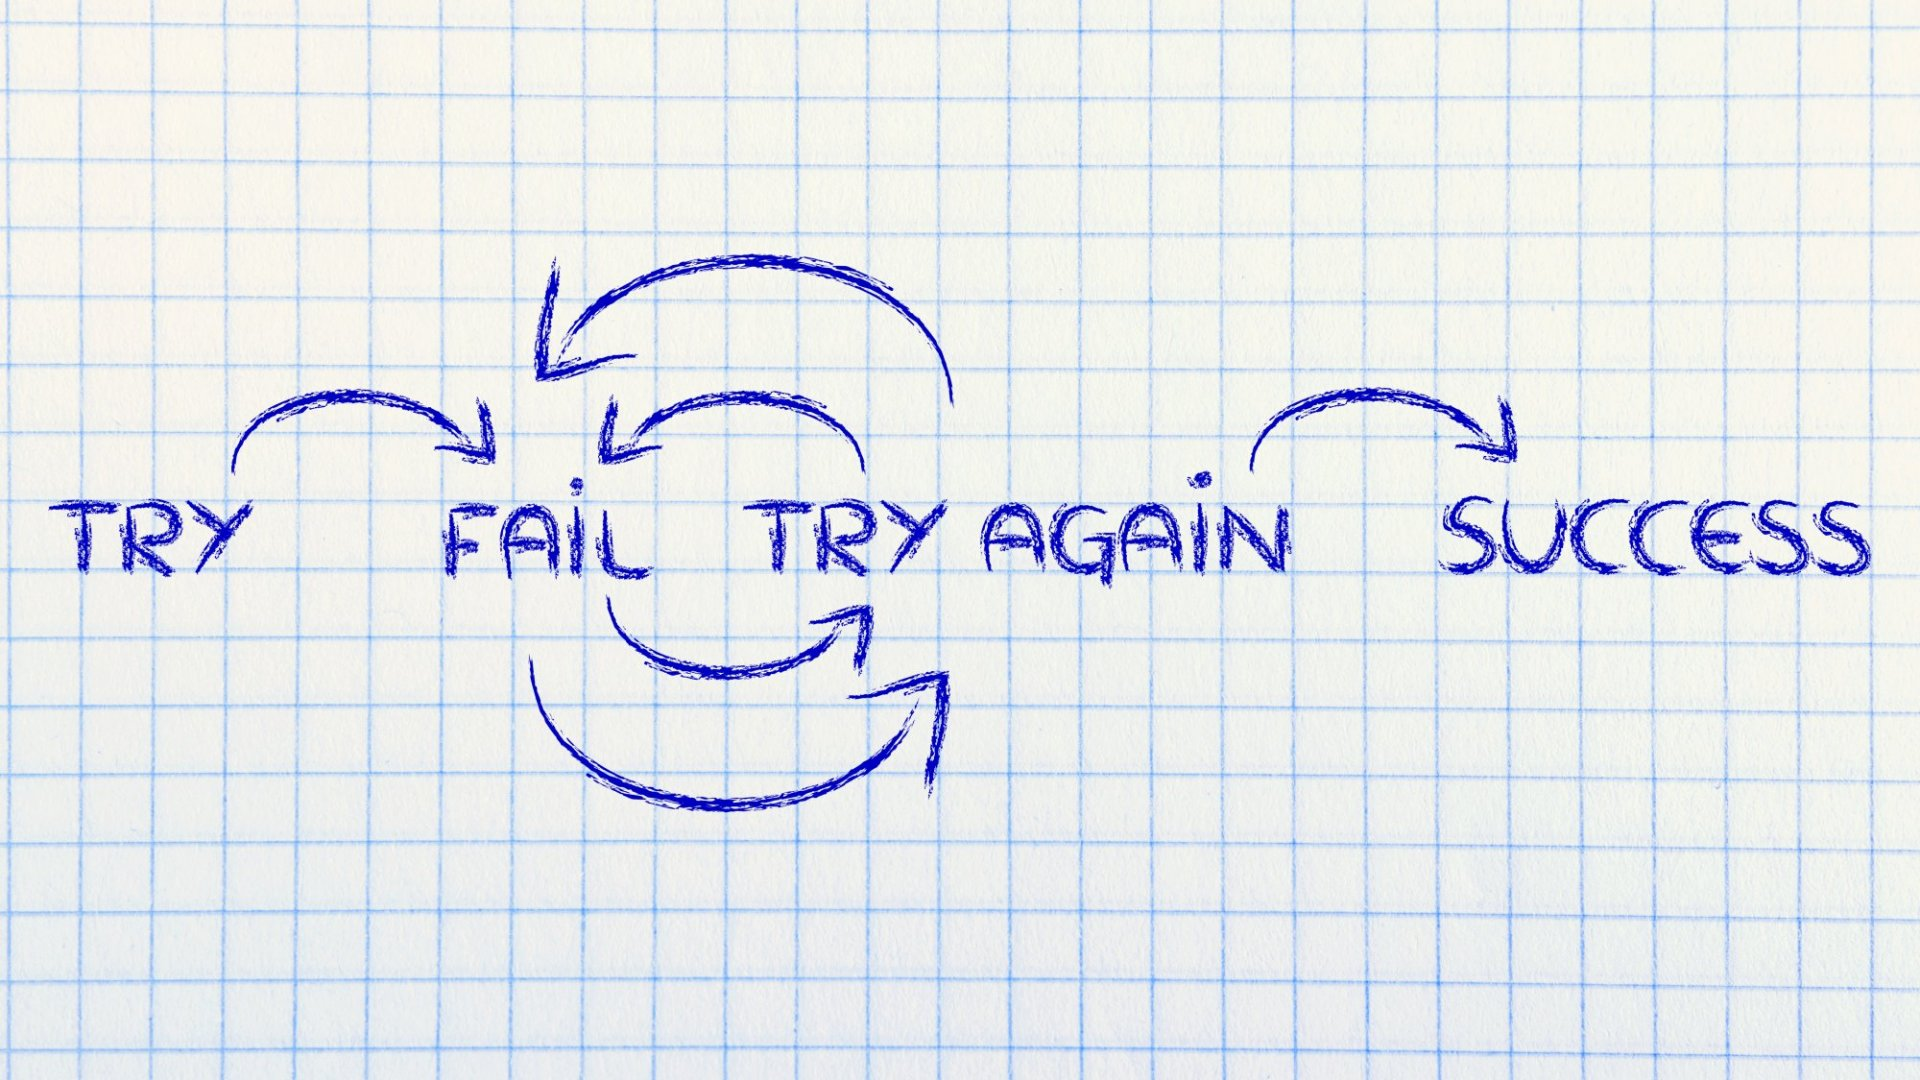 4 Exercises That Will Help You Turn a Failure Into Your Next Great Idea